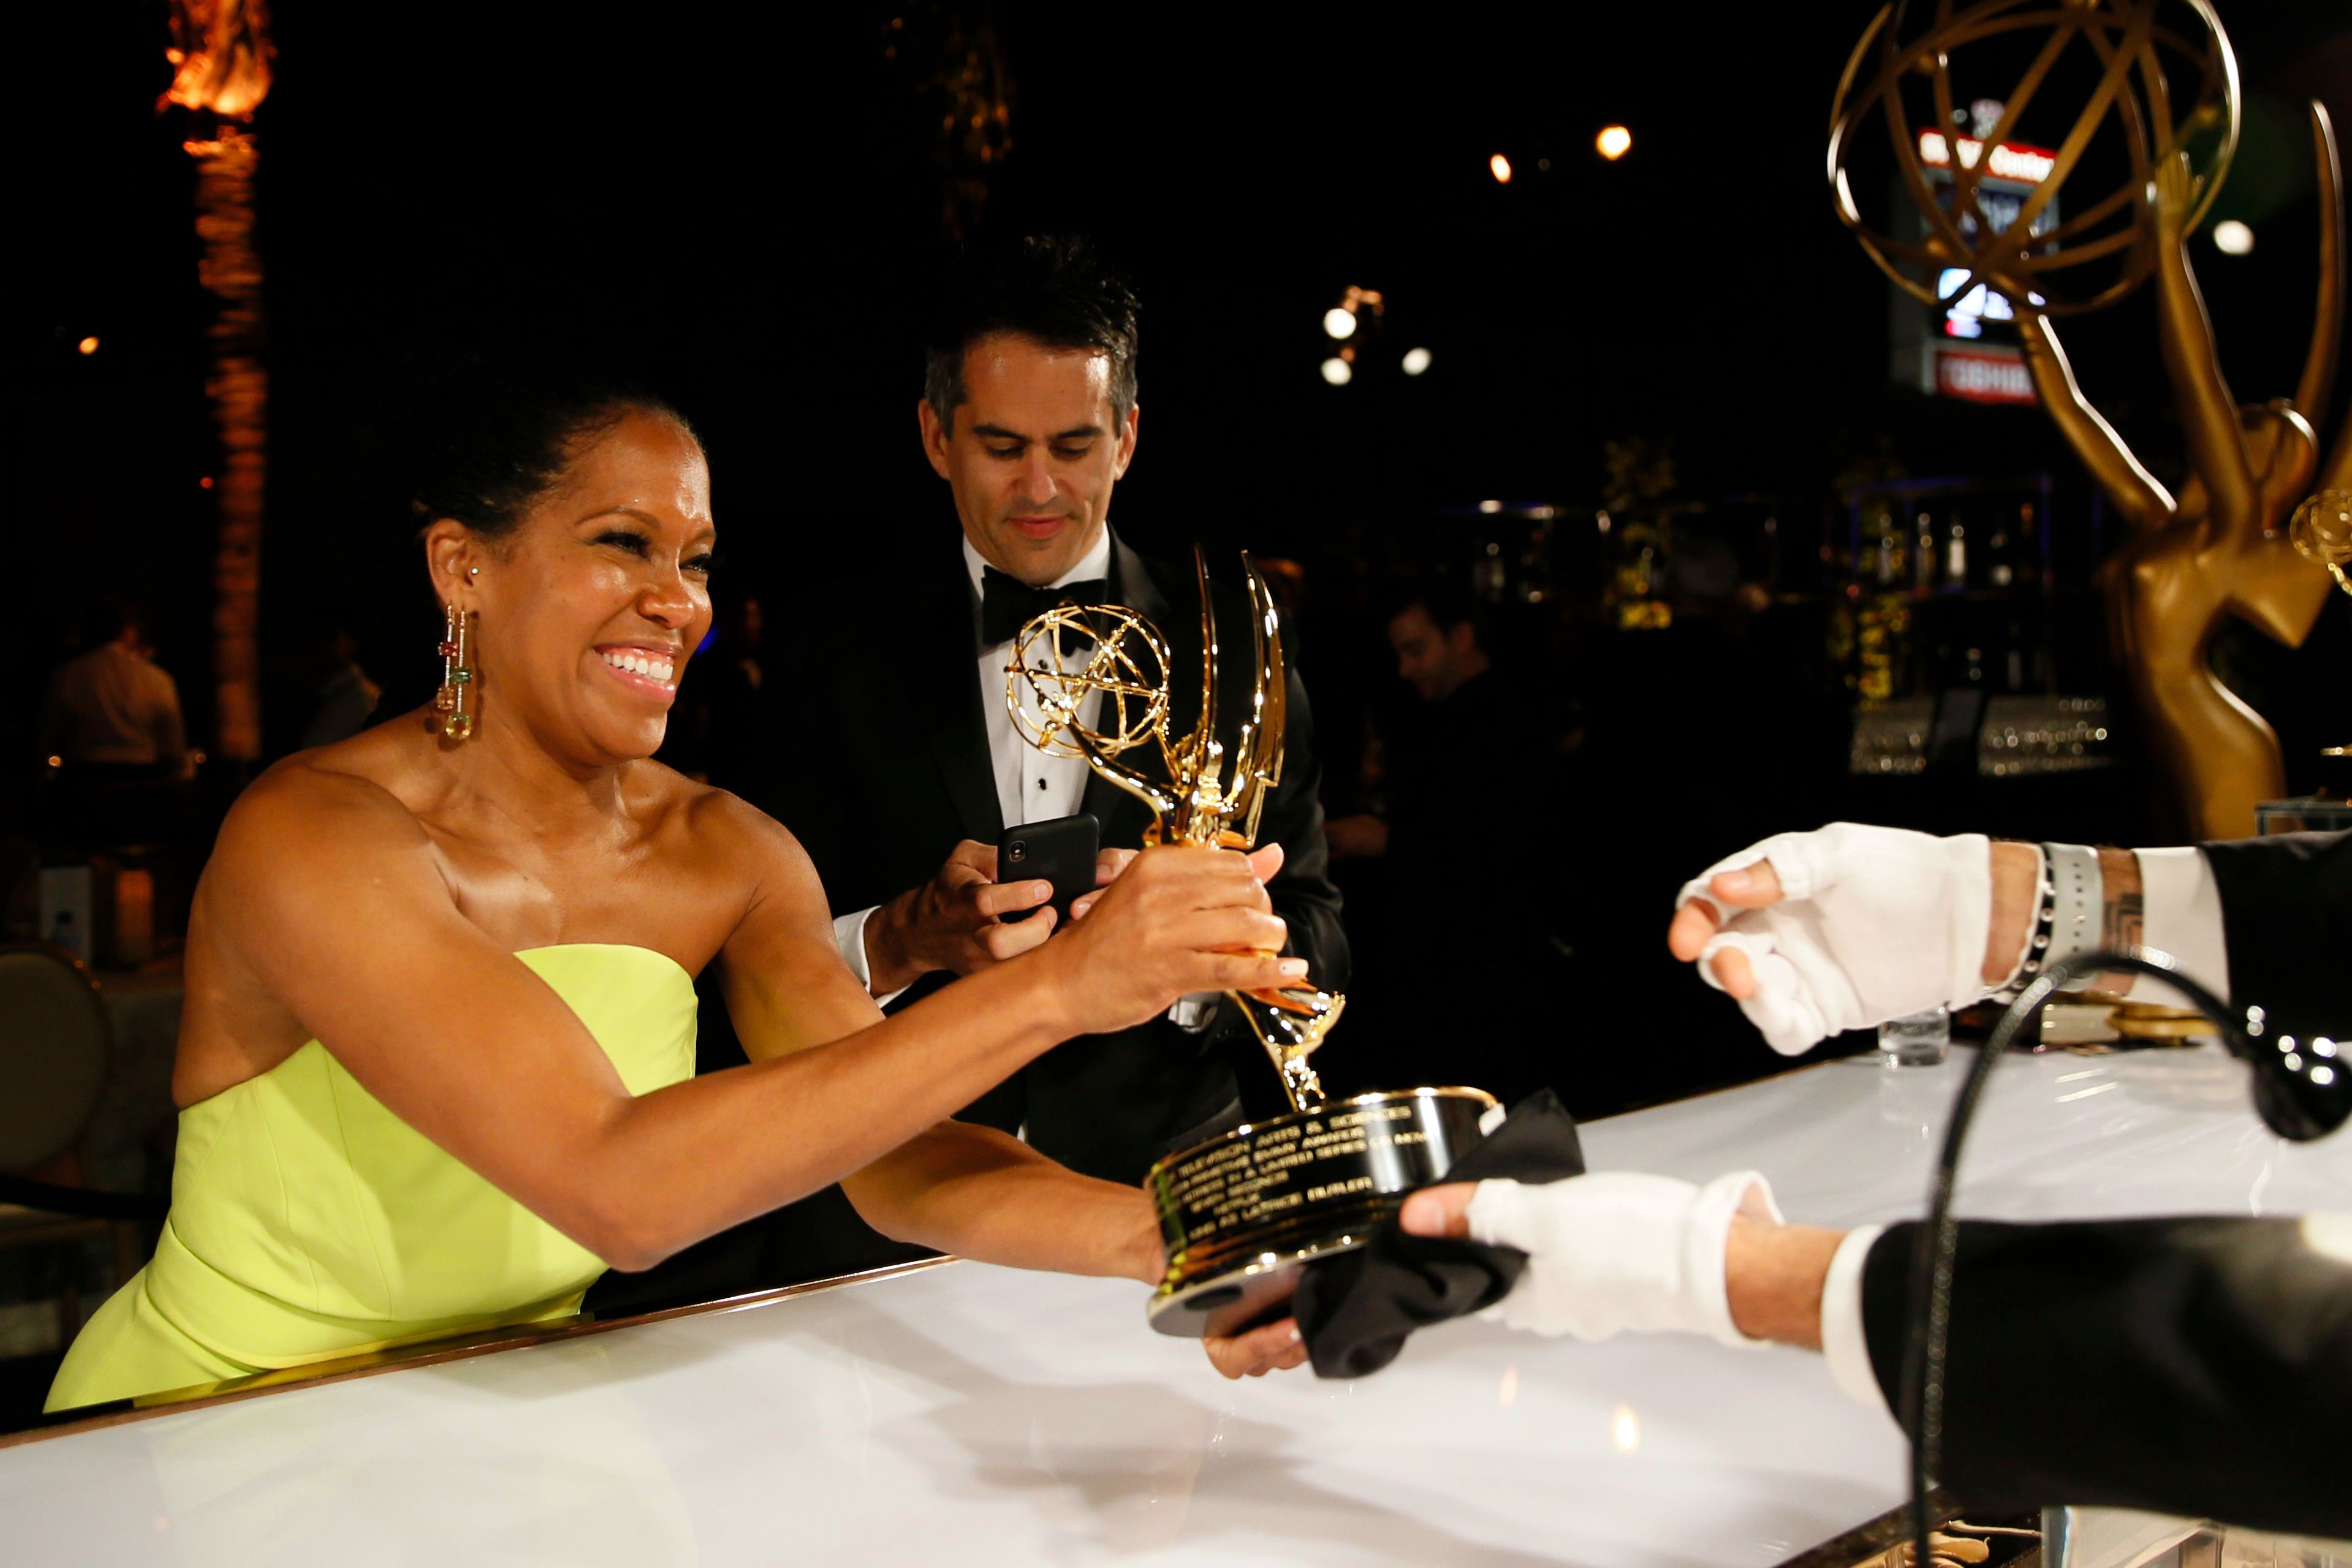 """Regina King, winner of the award for outstanding lead actress in a limited series, movie or dramatic special for """"Seven Seconds"""", at the Governors Ball Winners Circle at the 70th Primetime Emmy Awards, at the Microsoft Theater in Los Angeles70th Primetime Emmy Awards - Governors Ball Winners Circle, Los Angeles, USA - 17 Sep 2018"""